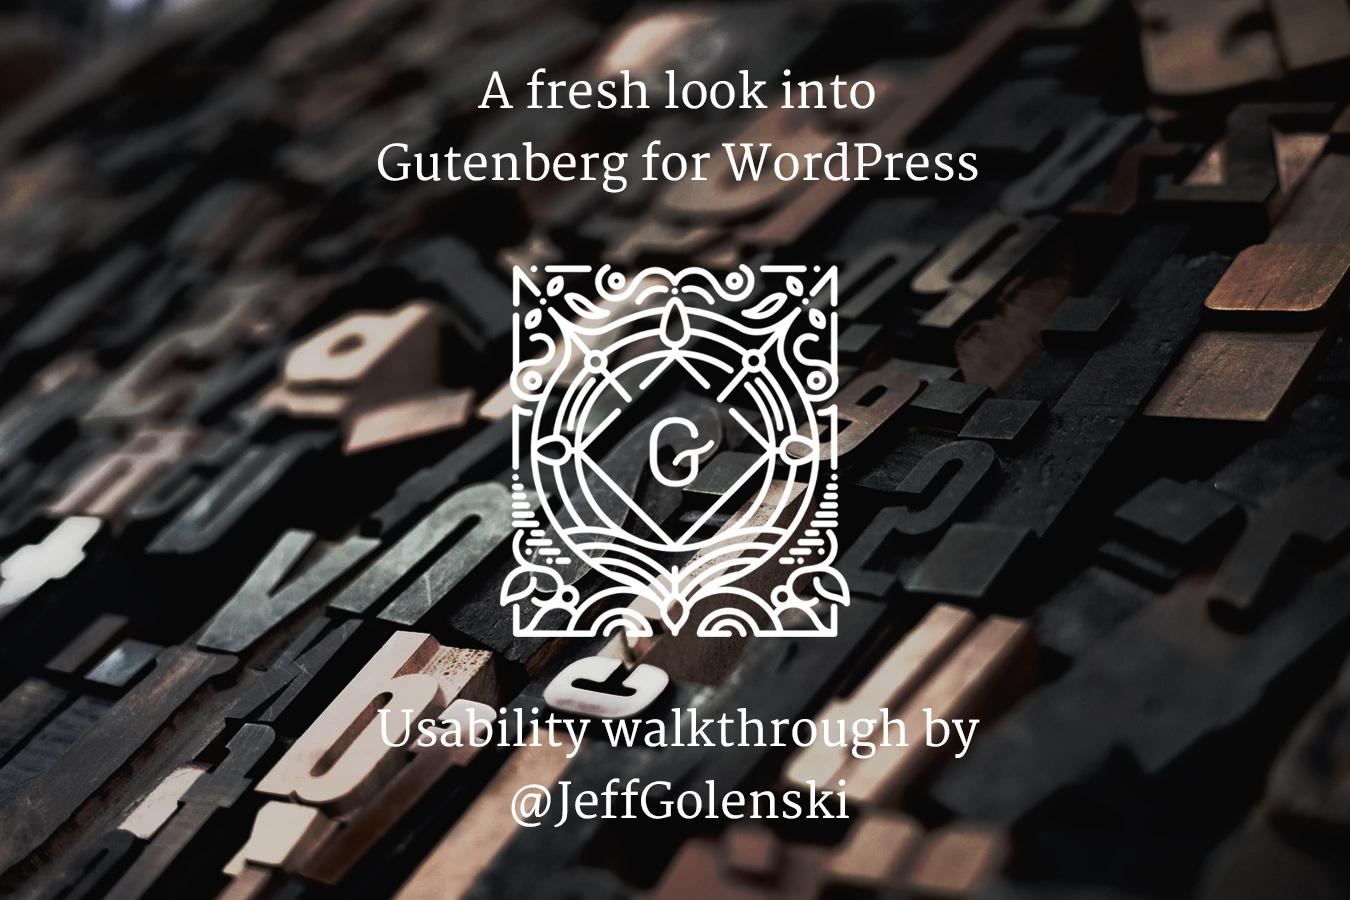 Gutenberg for WordPress Usability Walkthrough by Jeff Golenski